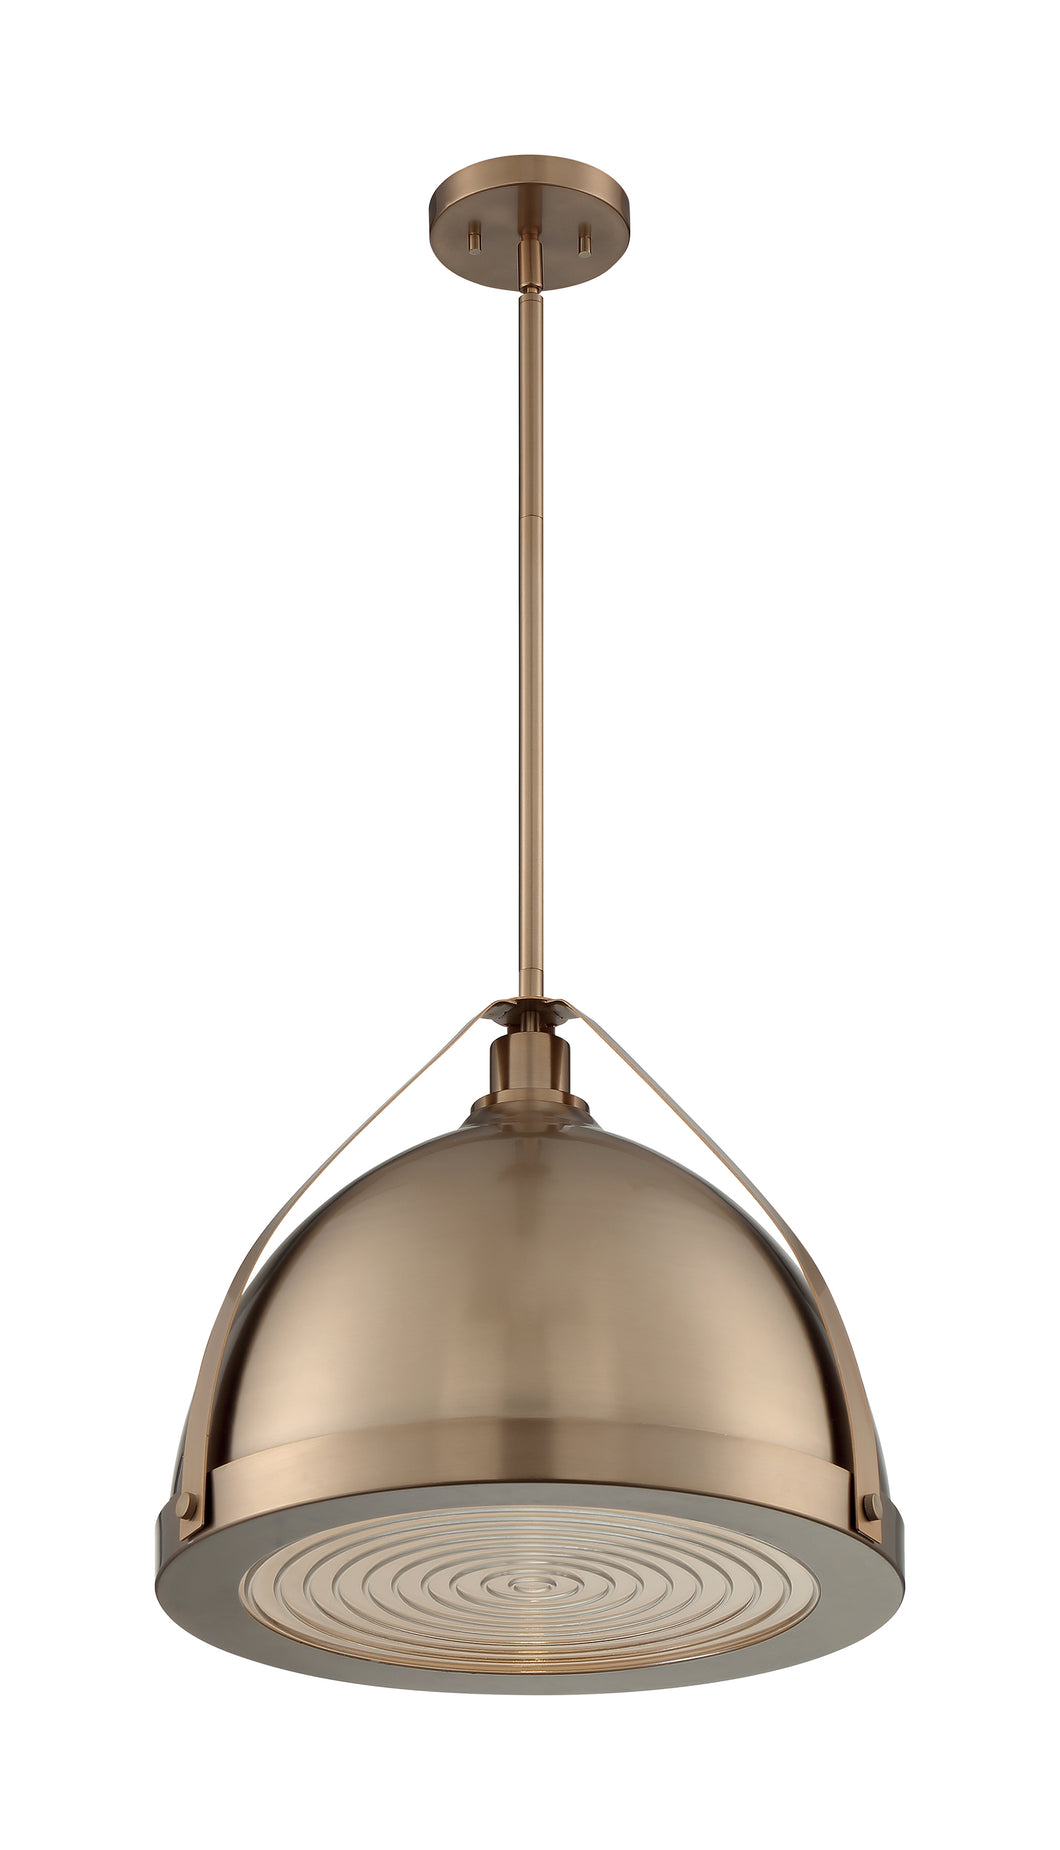 BARBETT - 1 LIGHT LARGE PENDANT WITH FRESNEL GLASS - BURNISHED BRASS FINISH #60-7203